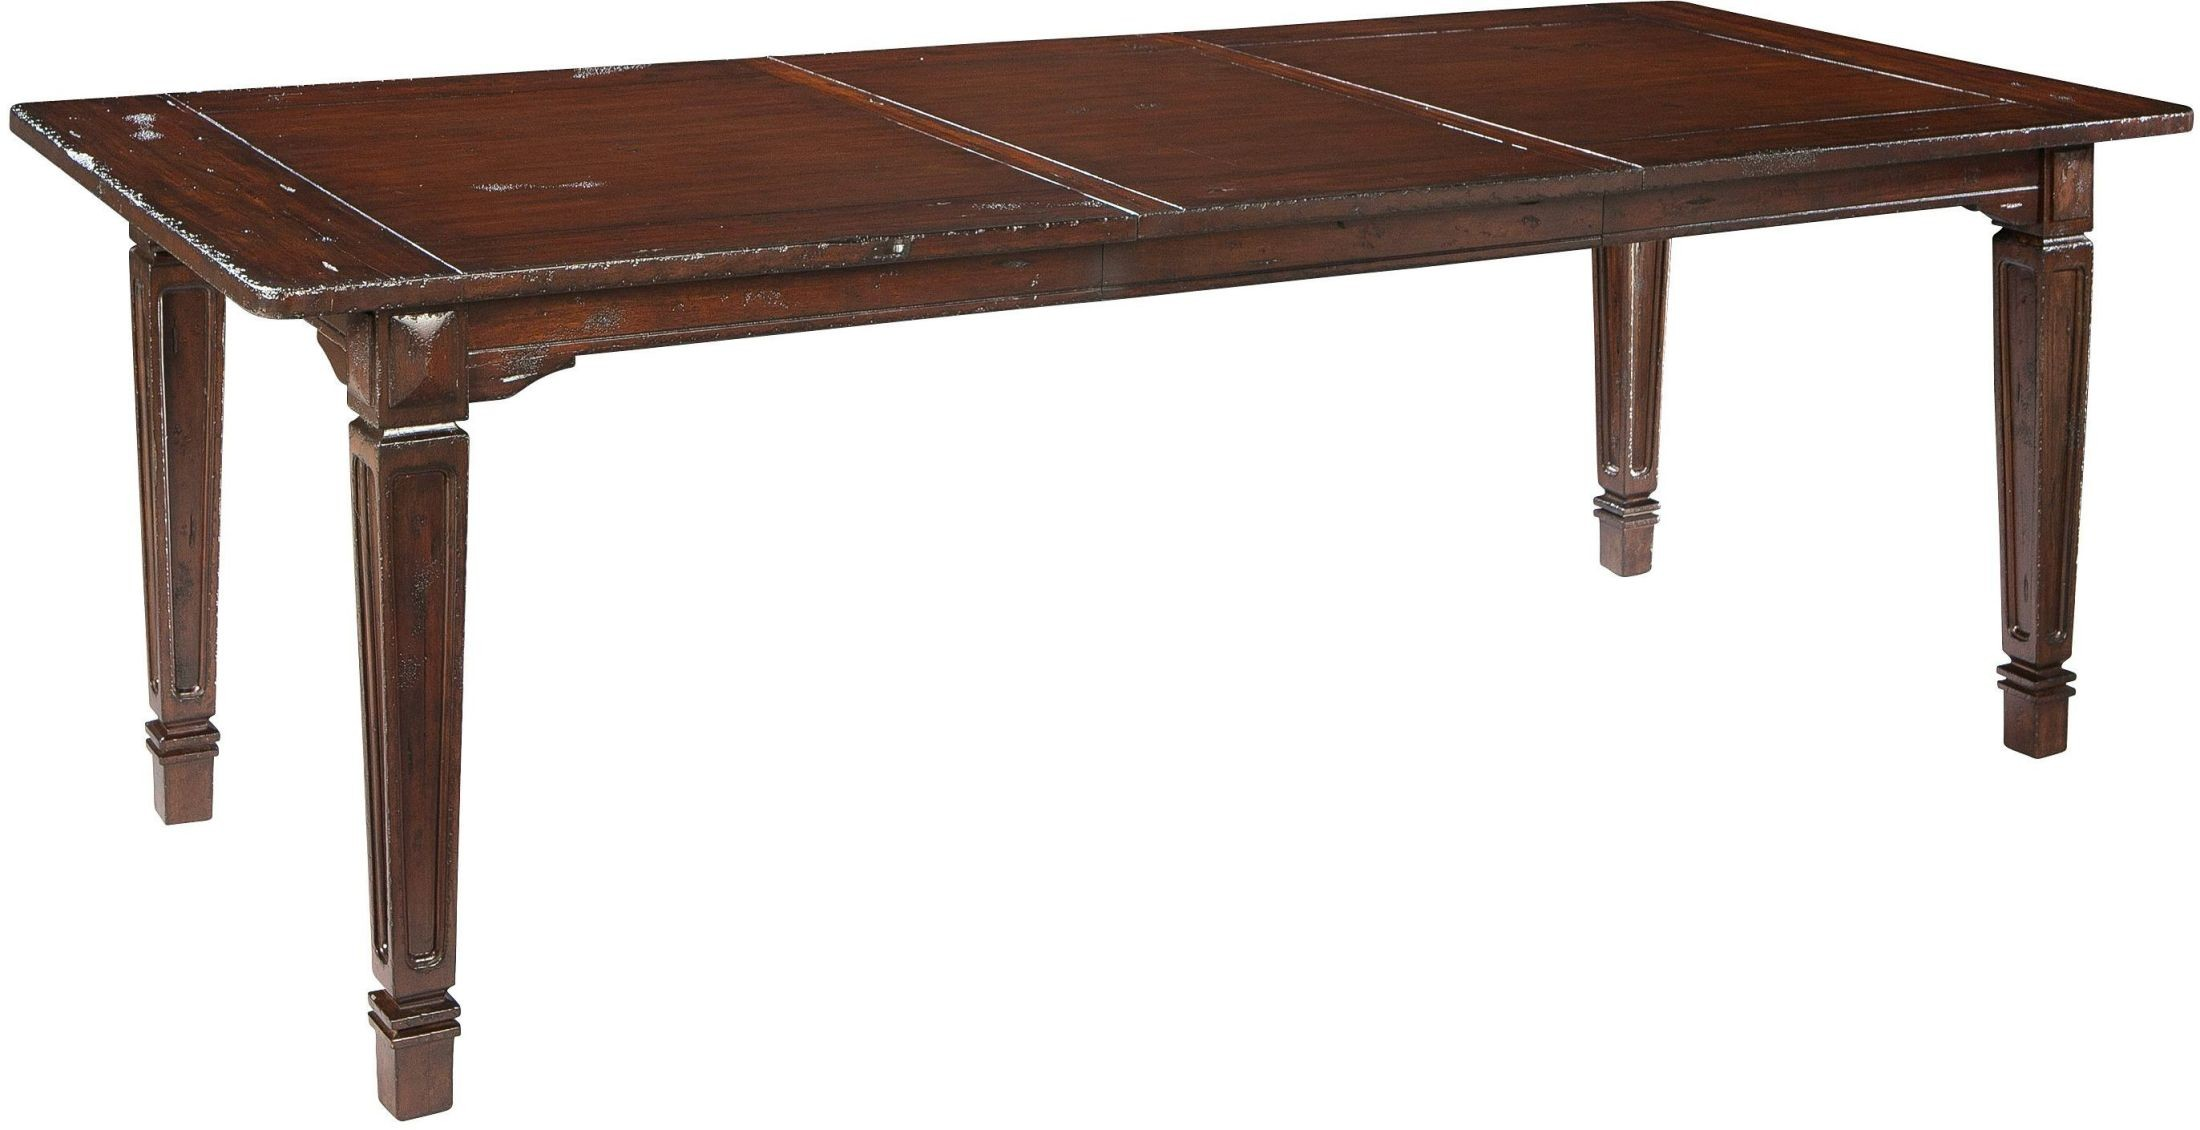 Havana Antique Brown Extendable Dining Table from Hekman  : 81237howardmiller from colemanfurniture.com size 2200 x 1130 jpeg 226kB